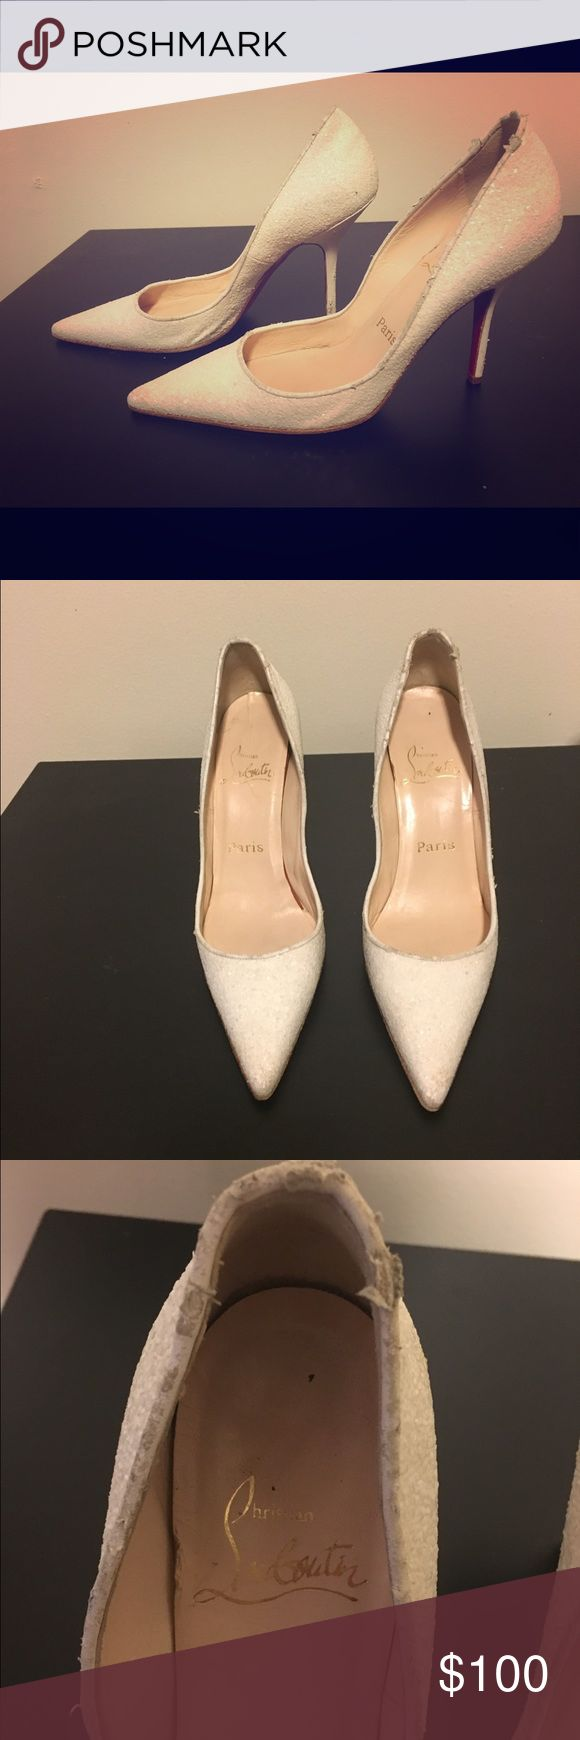 Christian Louboutin Pumps Authentic, well loved, Christian Louboutin pumps. White and sparkly! Size 37. Christian Louboutin Shoes Heels